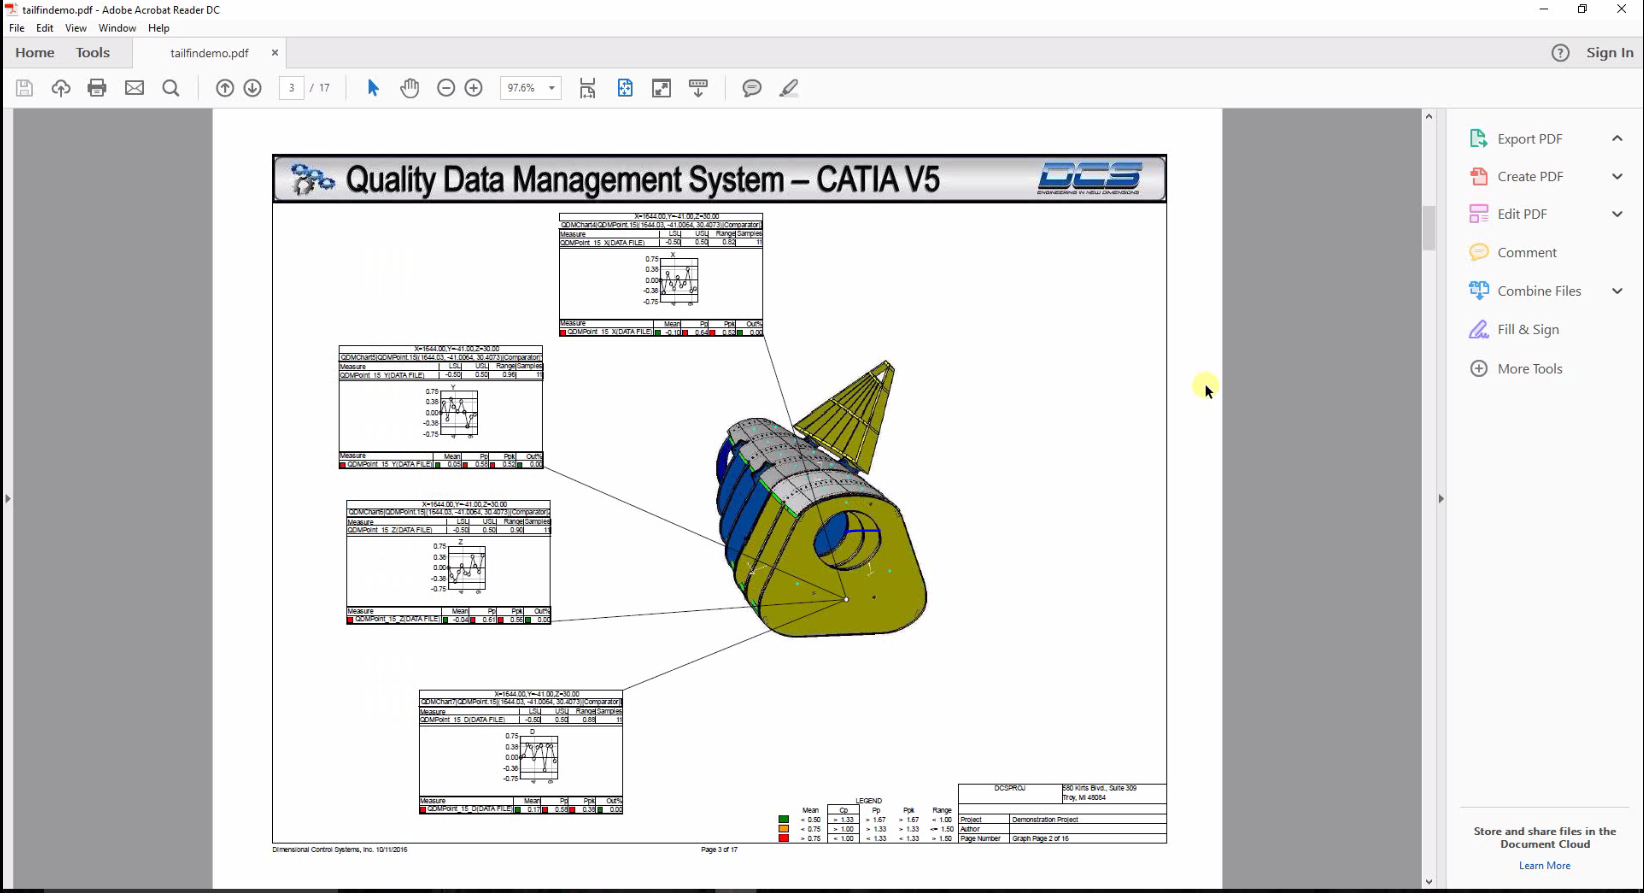 Automate Measurement Plans from CATIA Data with 3DCS Inspection Planner